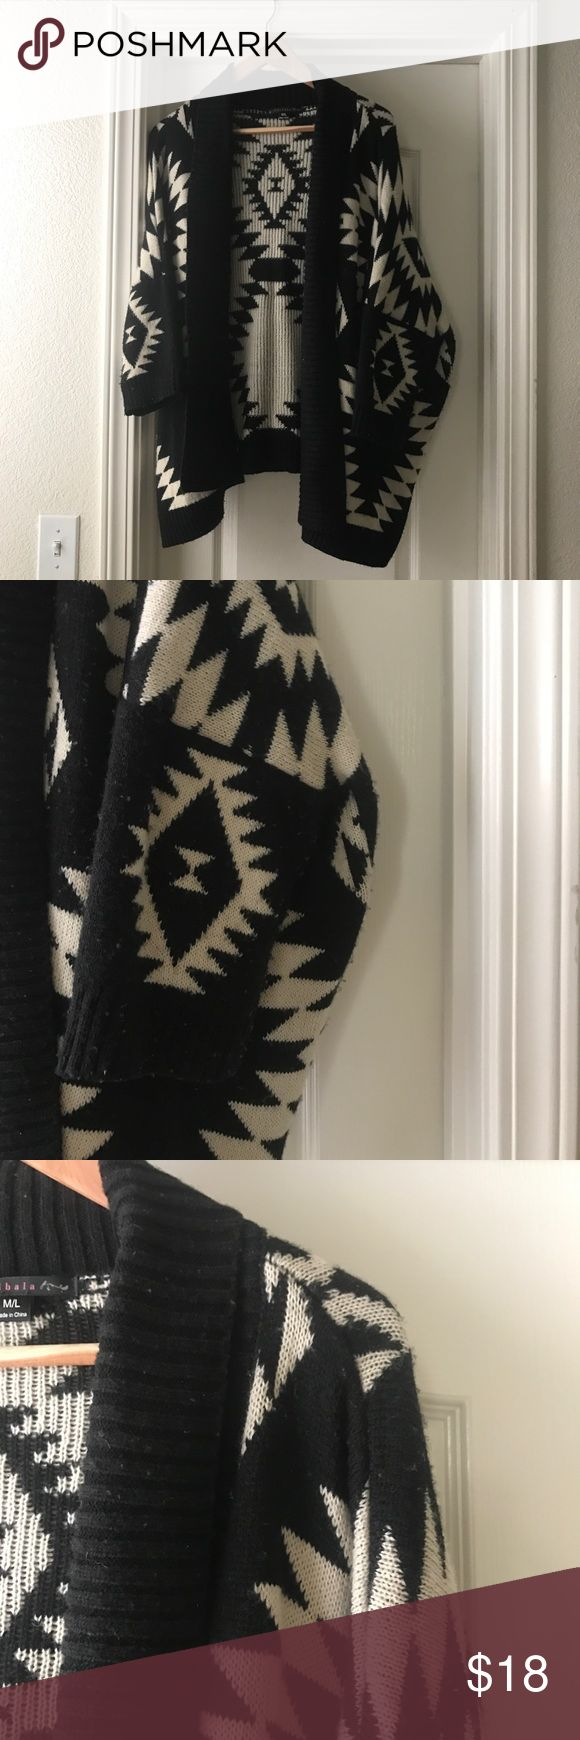 Chunky Boho Tribal Sweater Chunky sweater with a tribal pattern in black and white.  Size m/l, fits all sizes IMO. Super chunky, 3/4 length sleeves. Minor pilling! Sweaters Cardigans